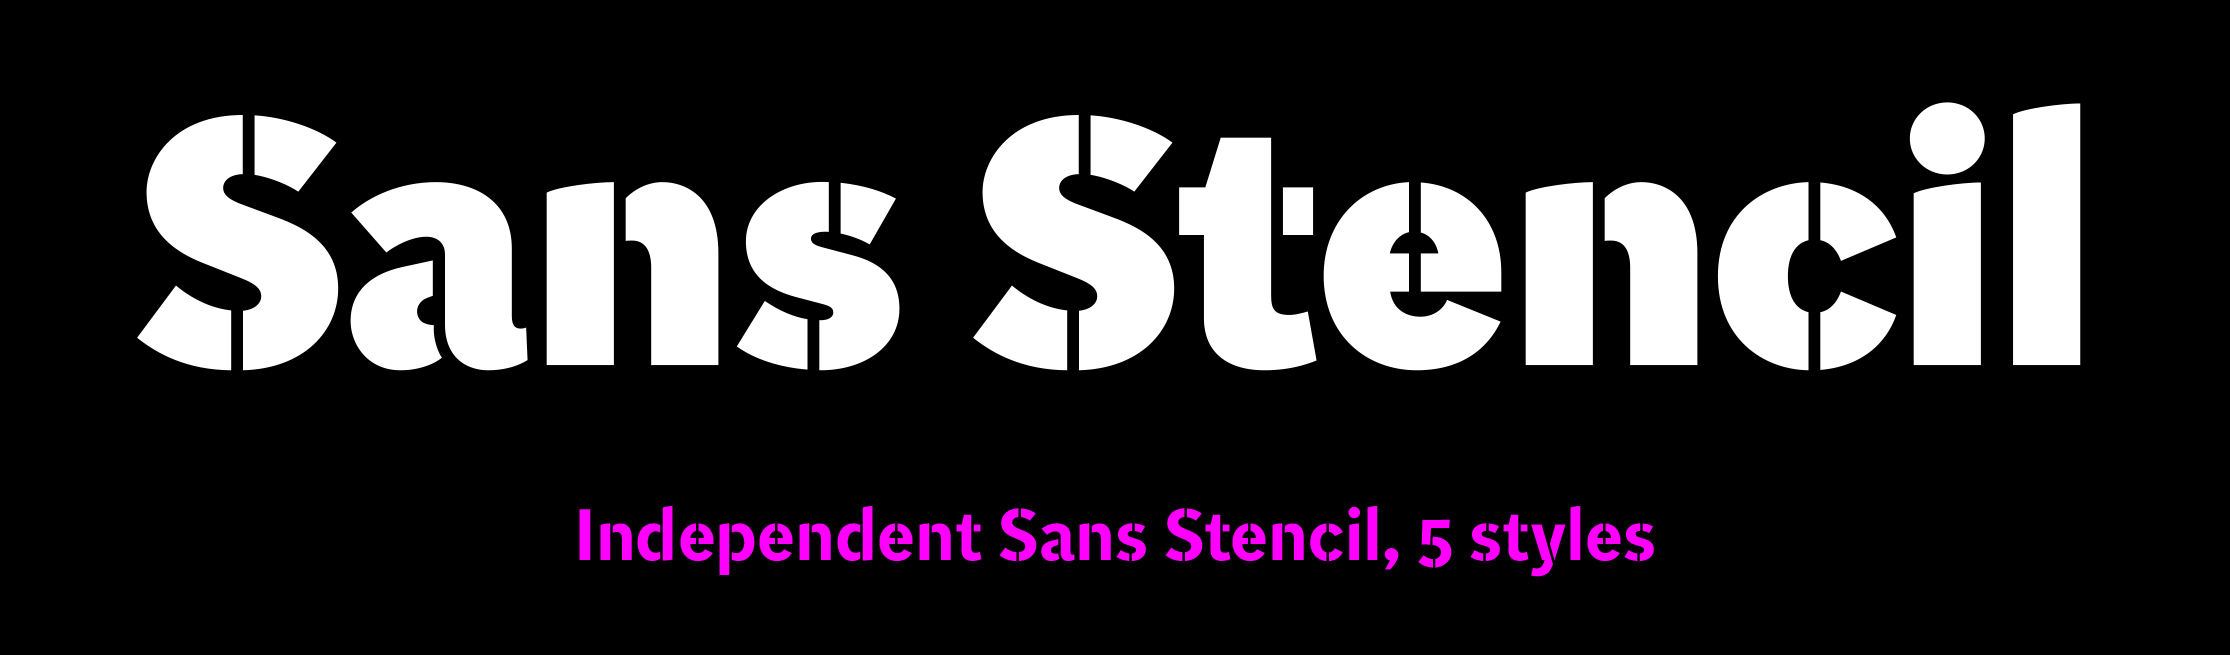 Independent Sans Stencil sample